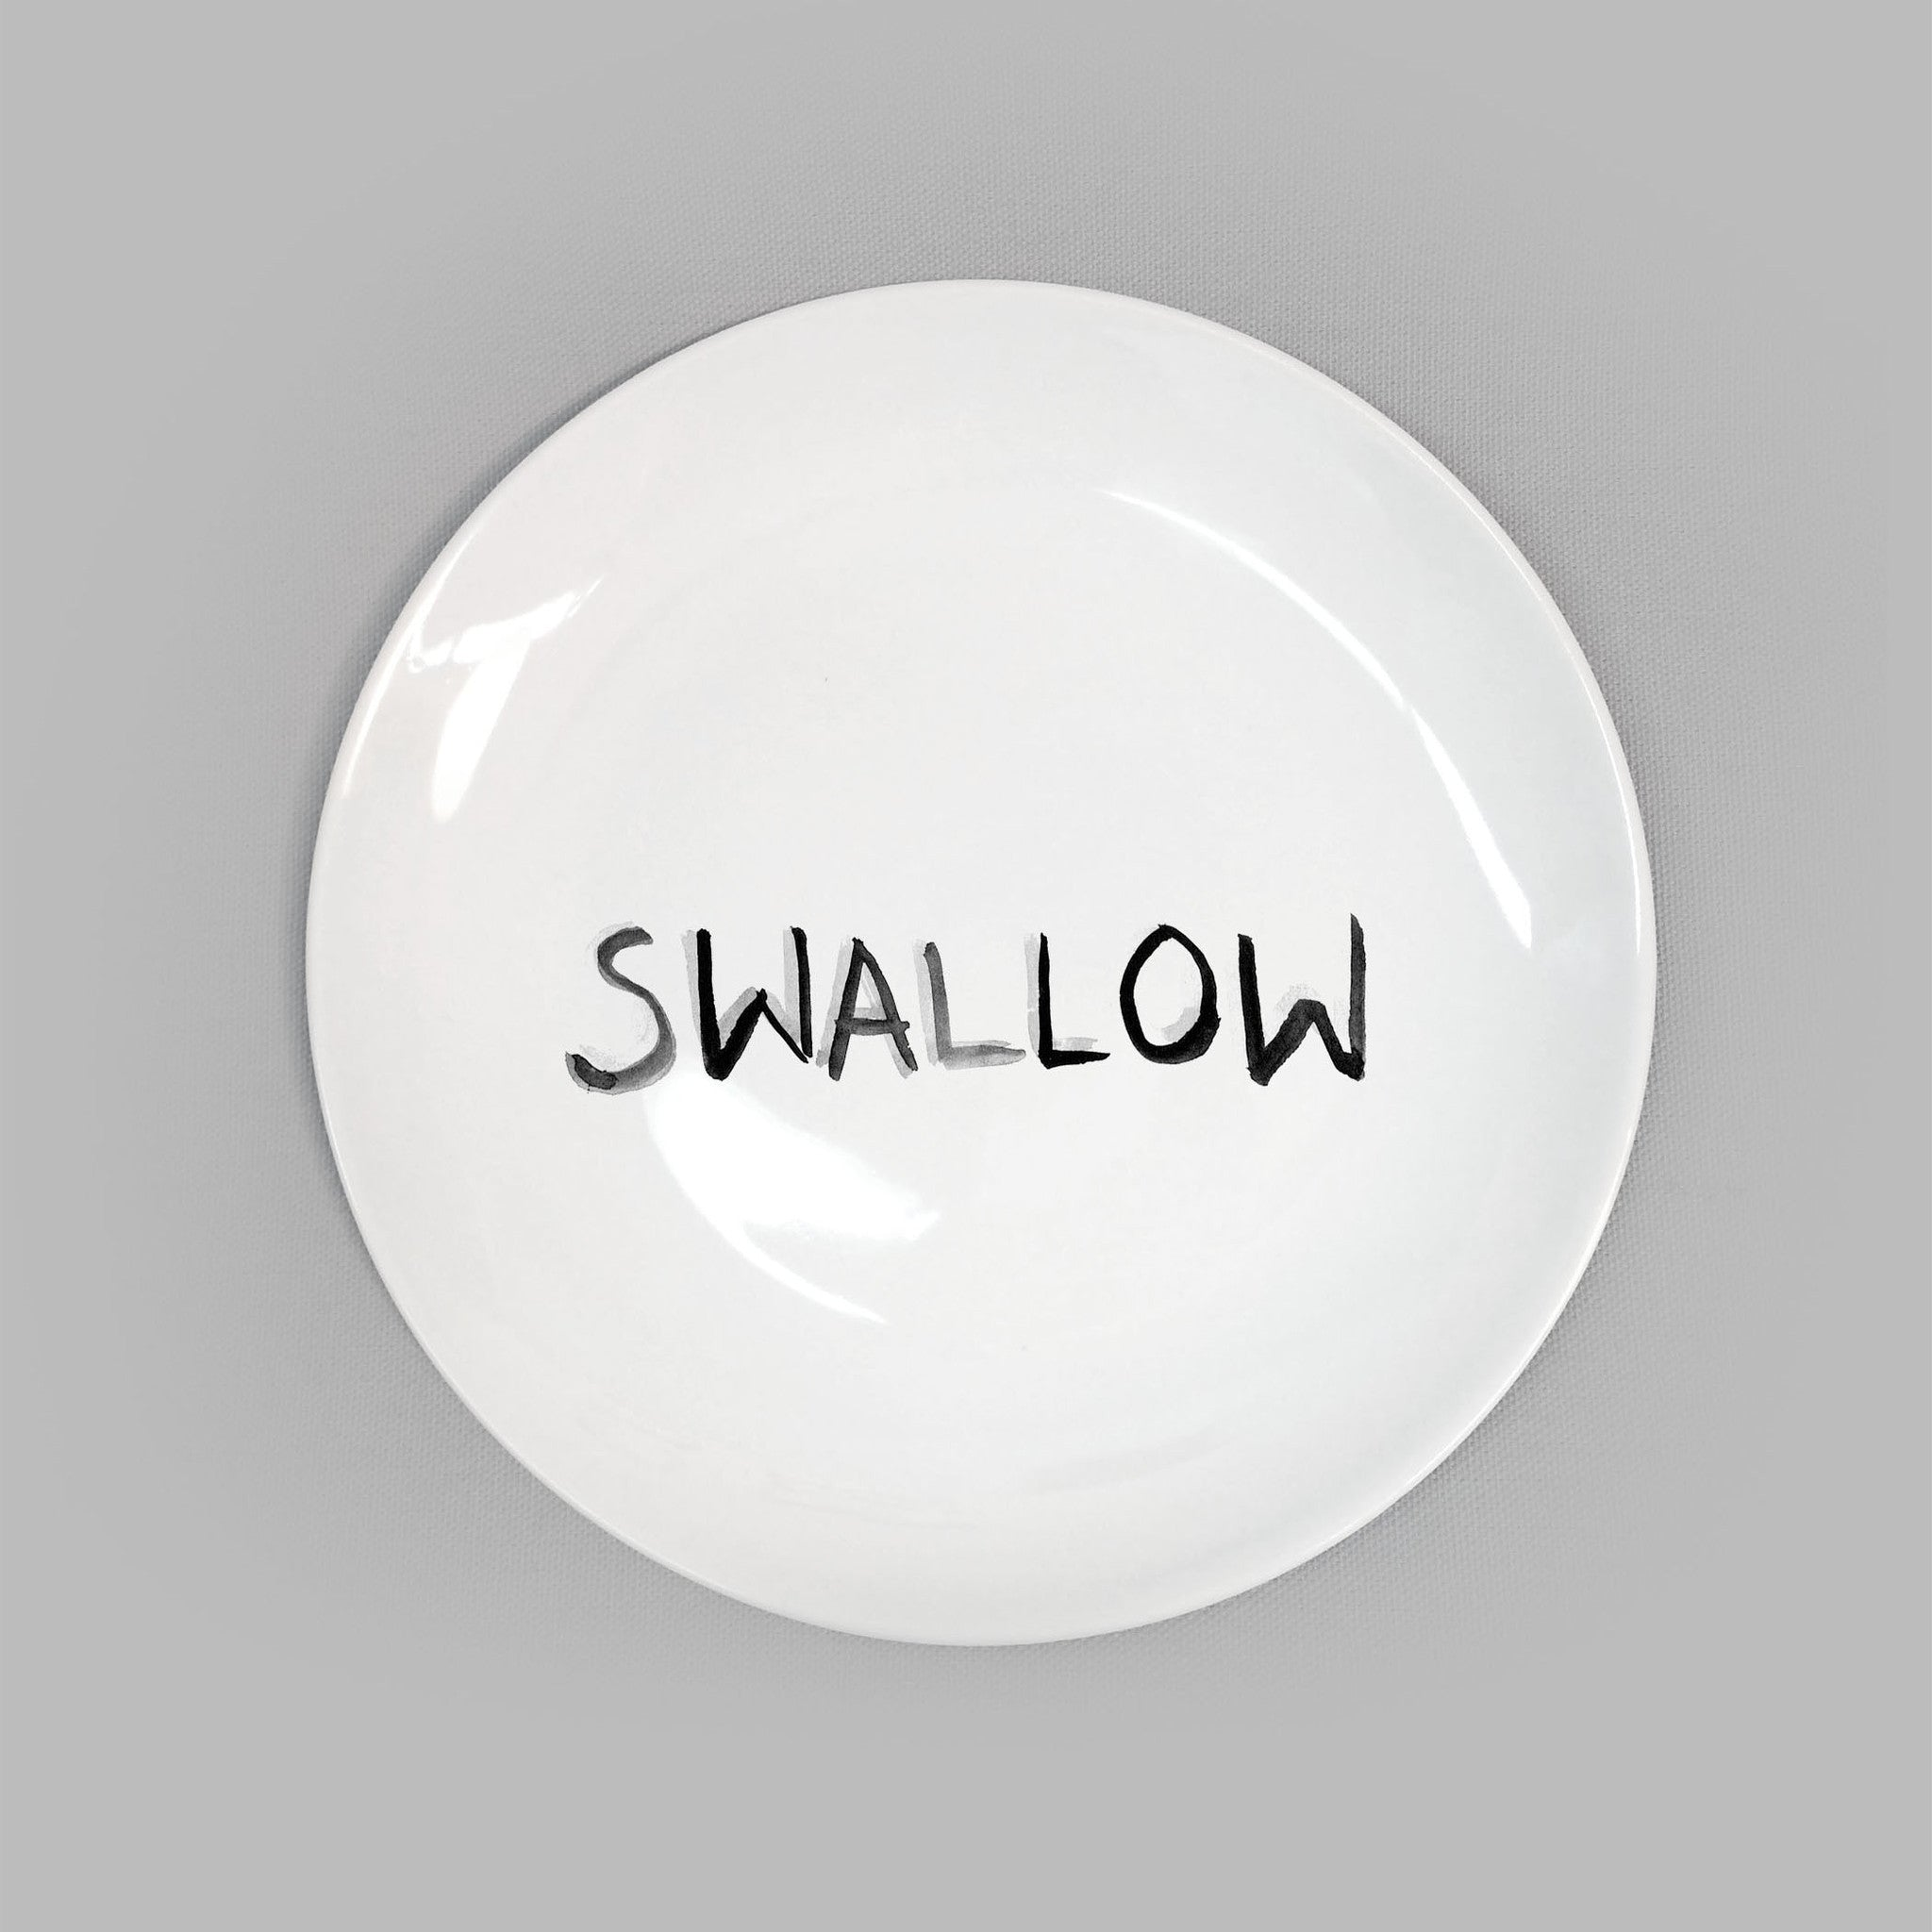 Dirty Dishes. Swallow Plate.